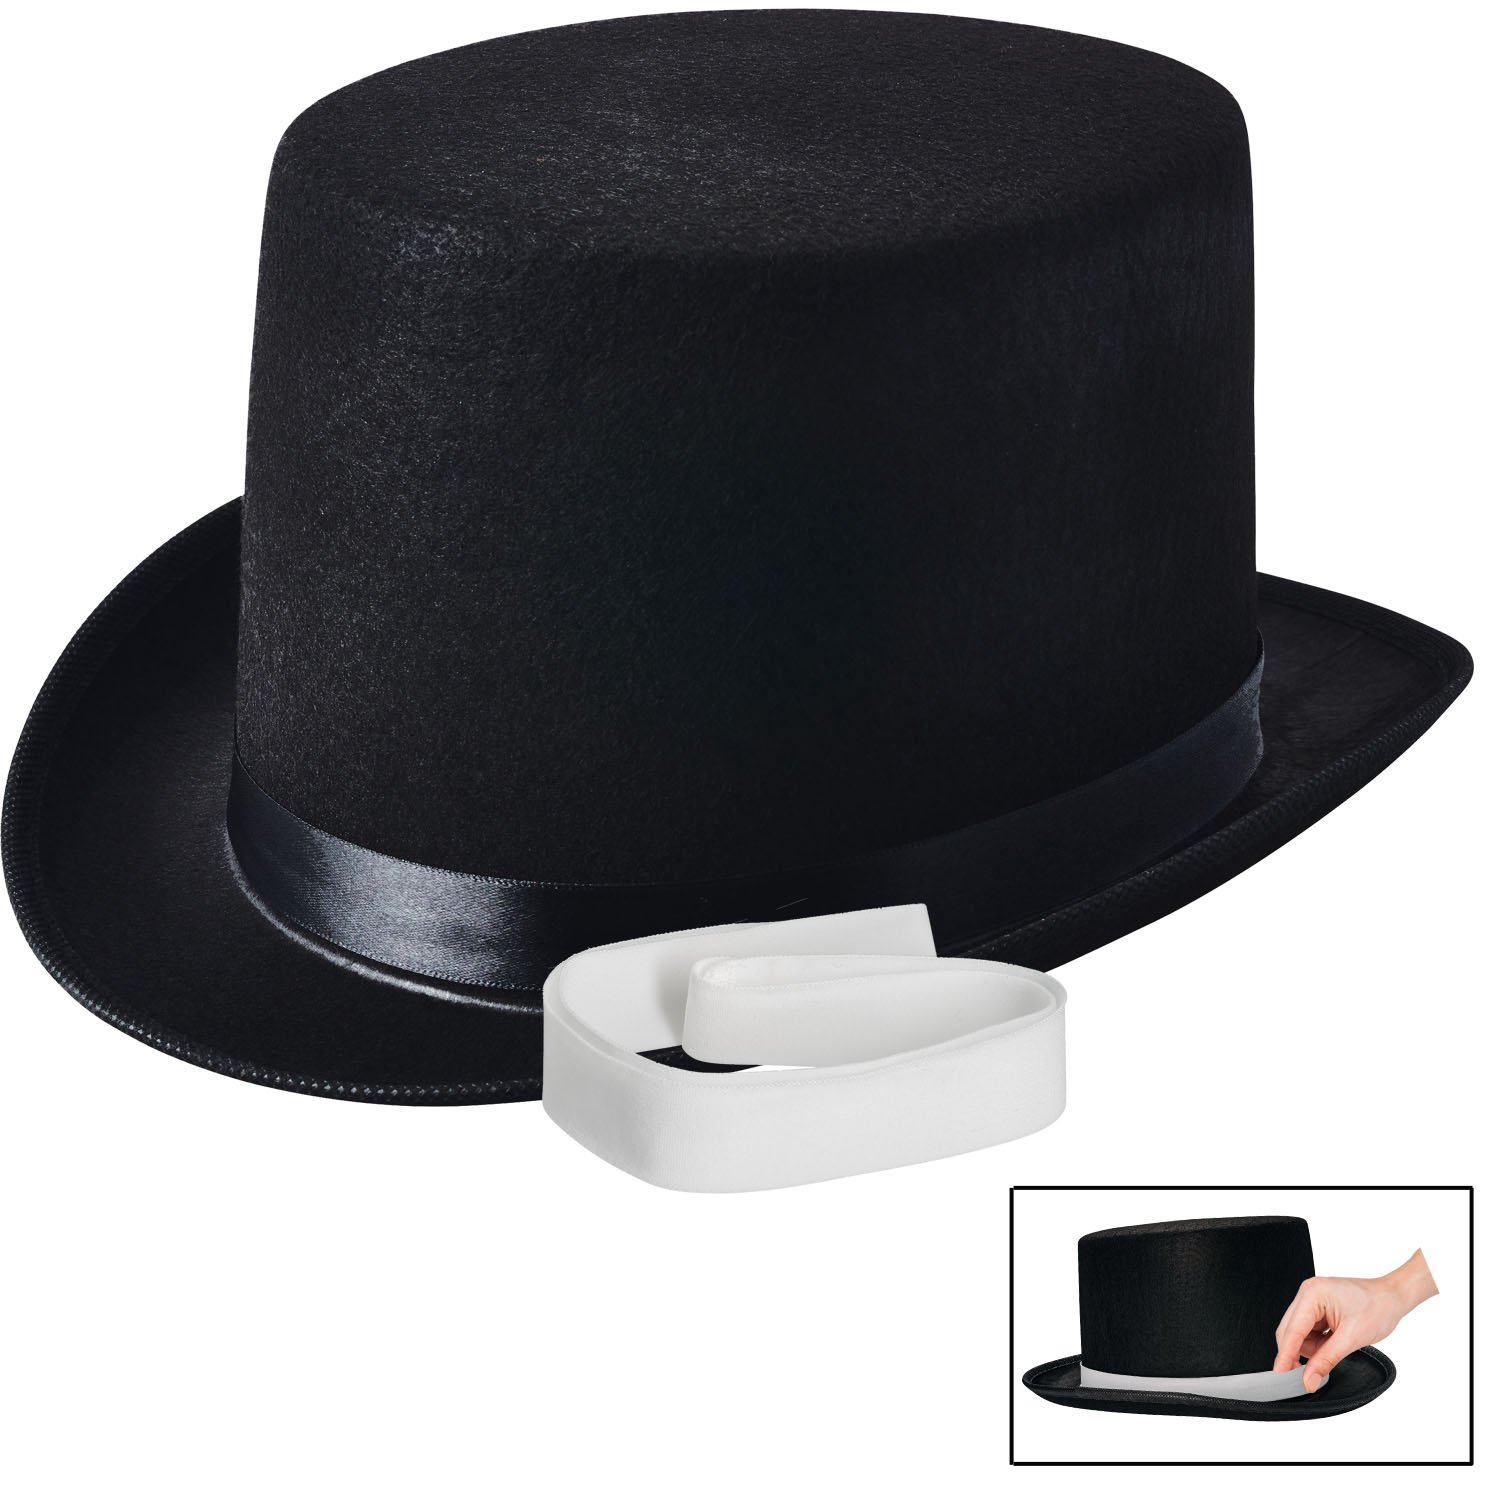 NJ Novelty - Black Felt Top Hat, Costume Dress Up Party Hat by NJ Novelty